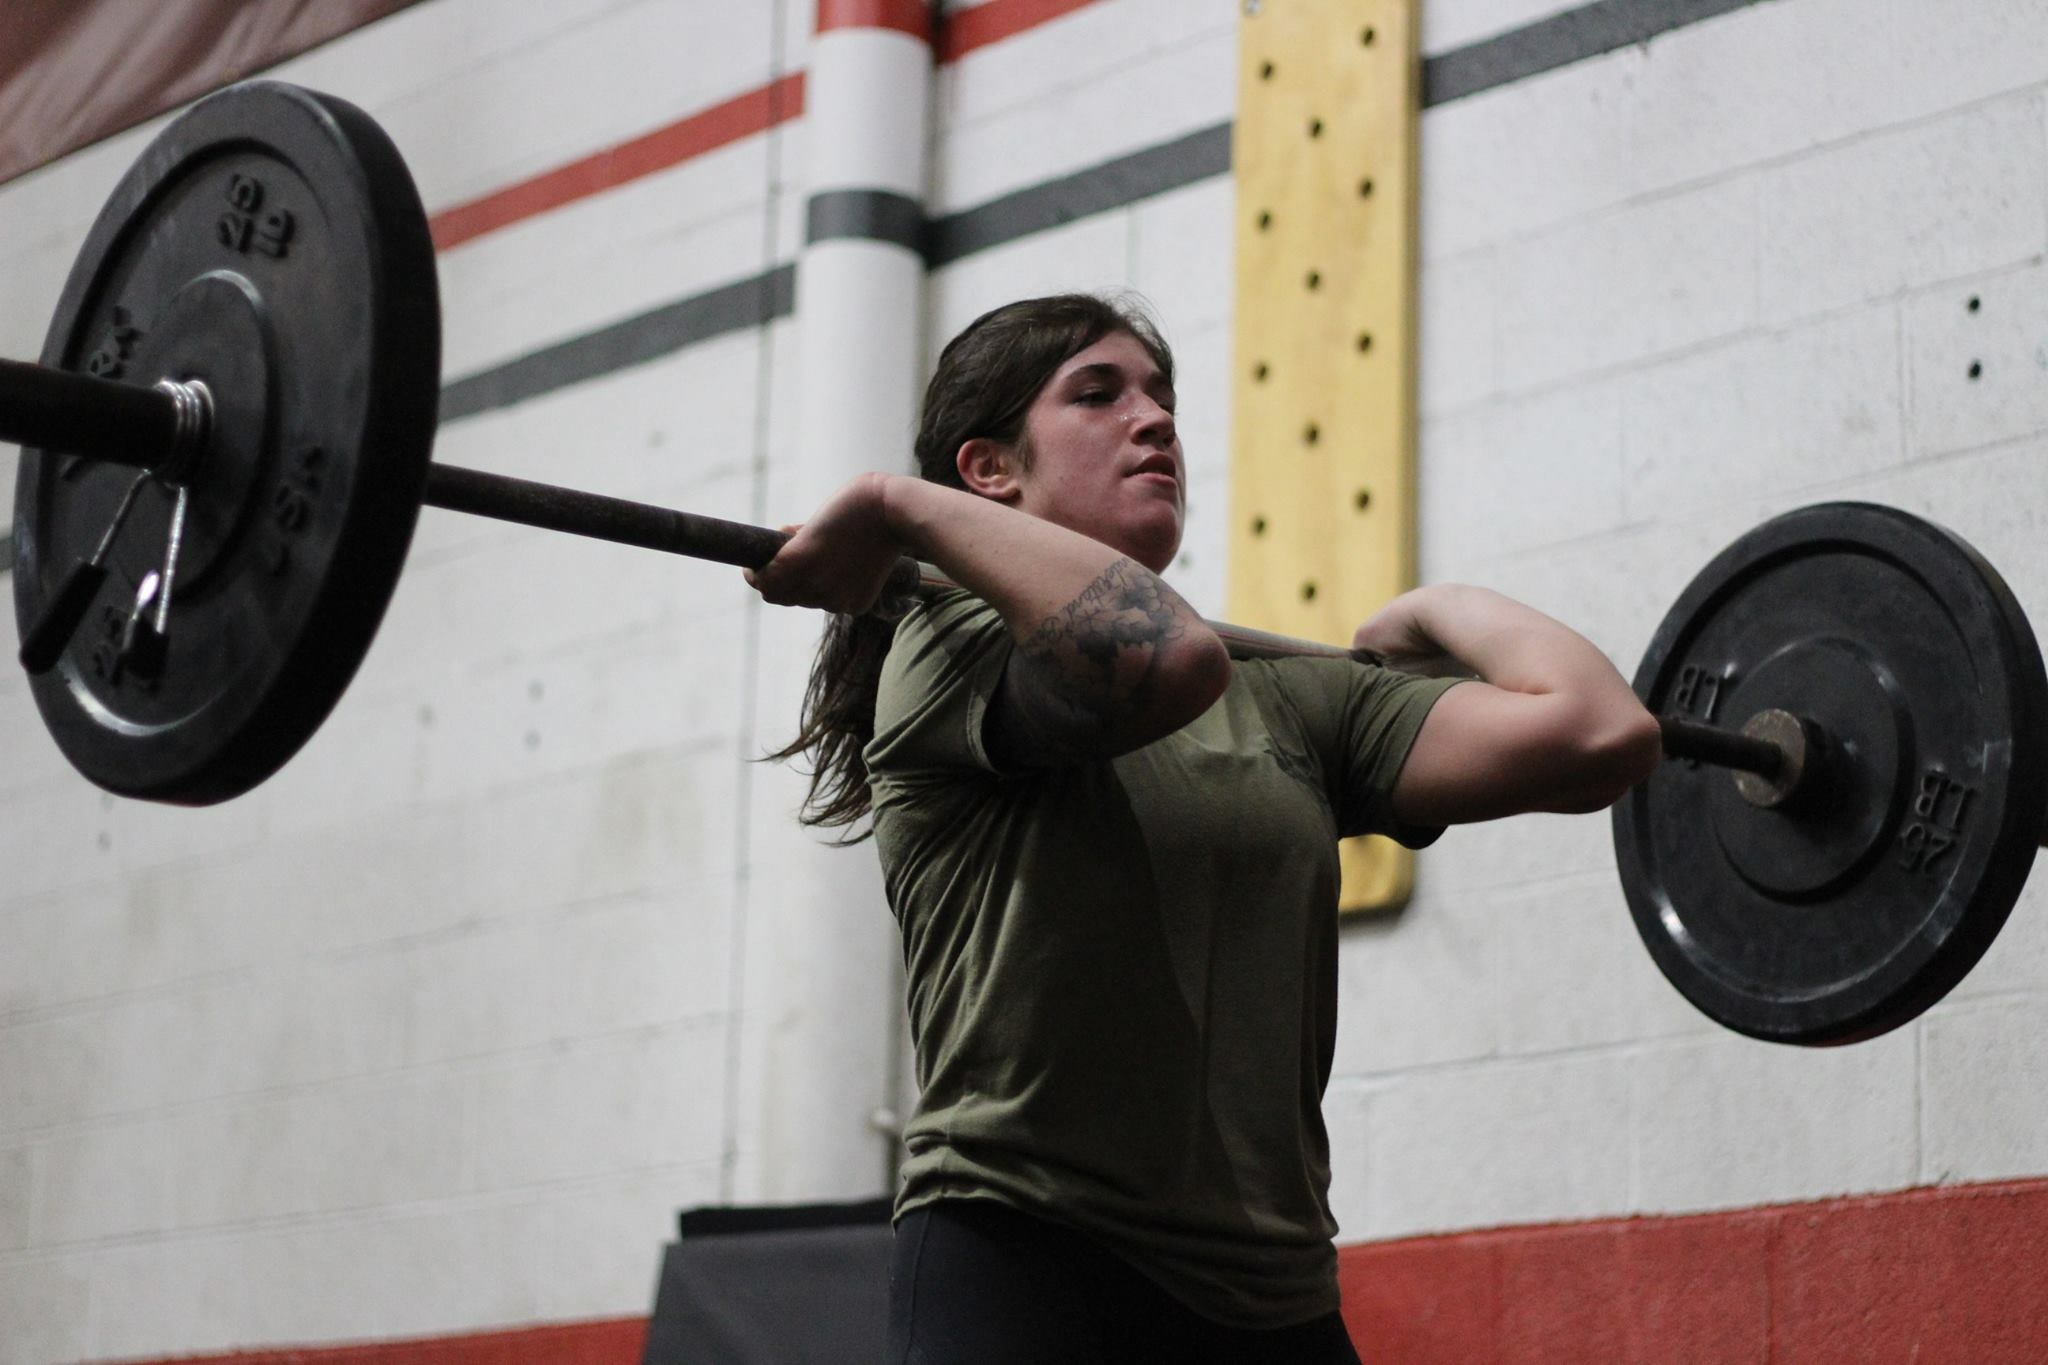 Thursday, May 3 WOD